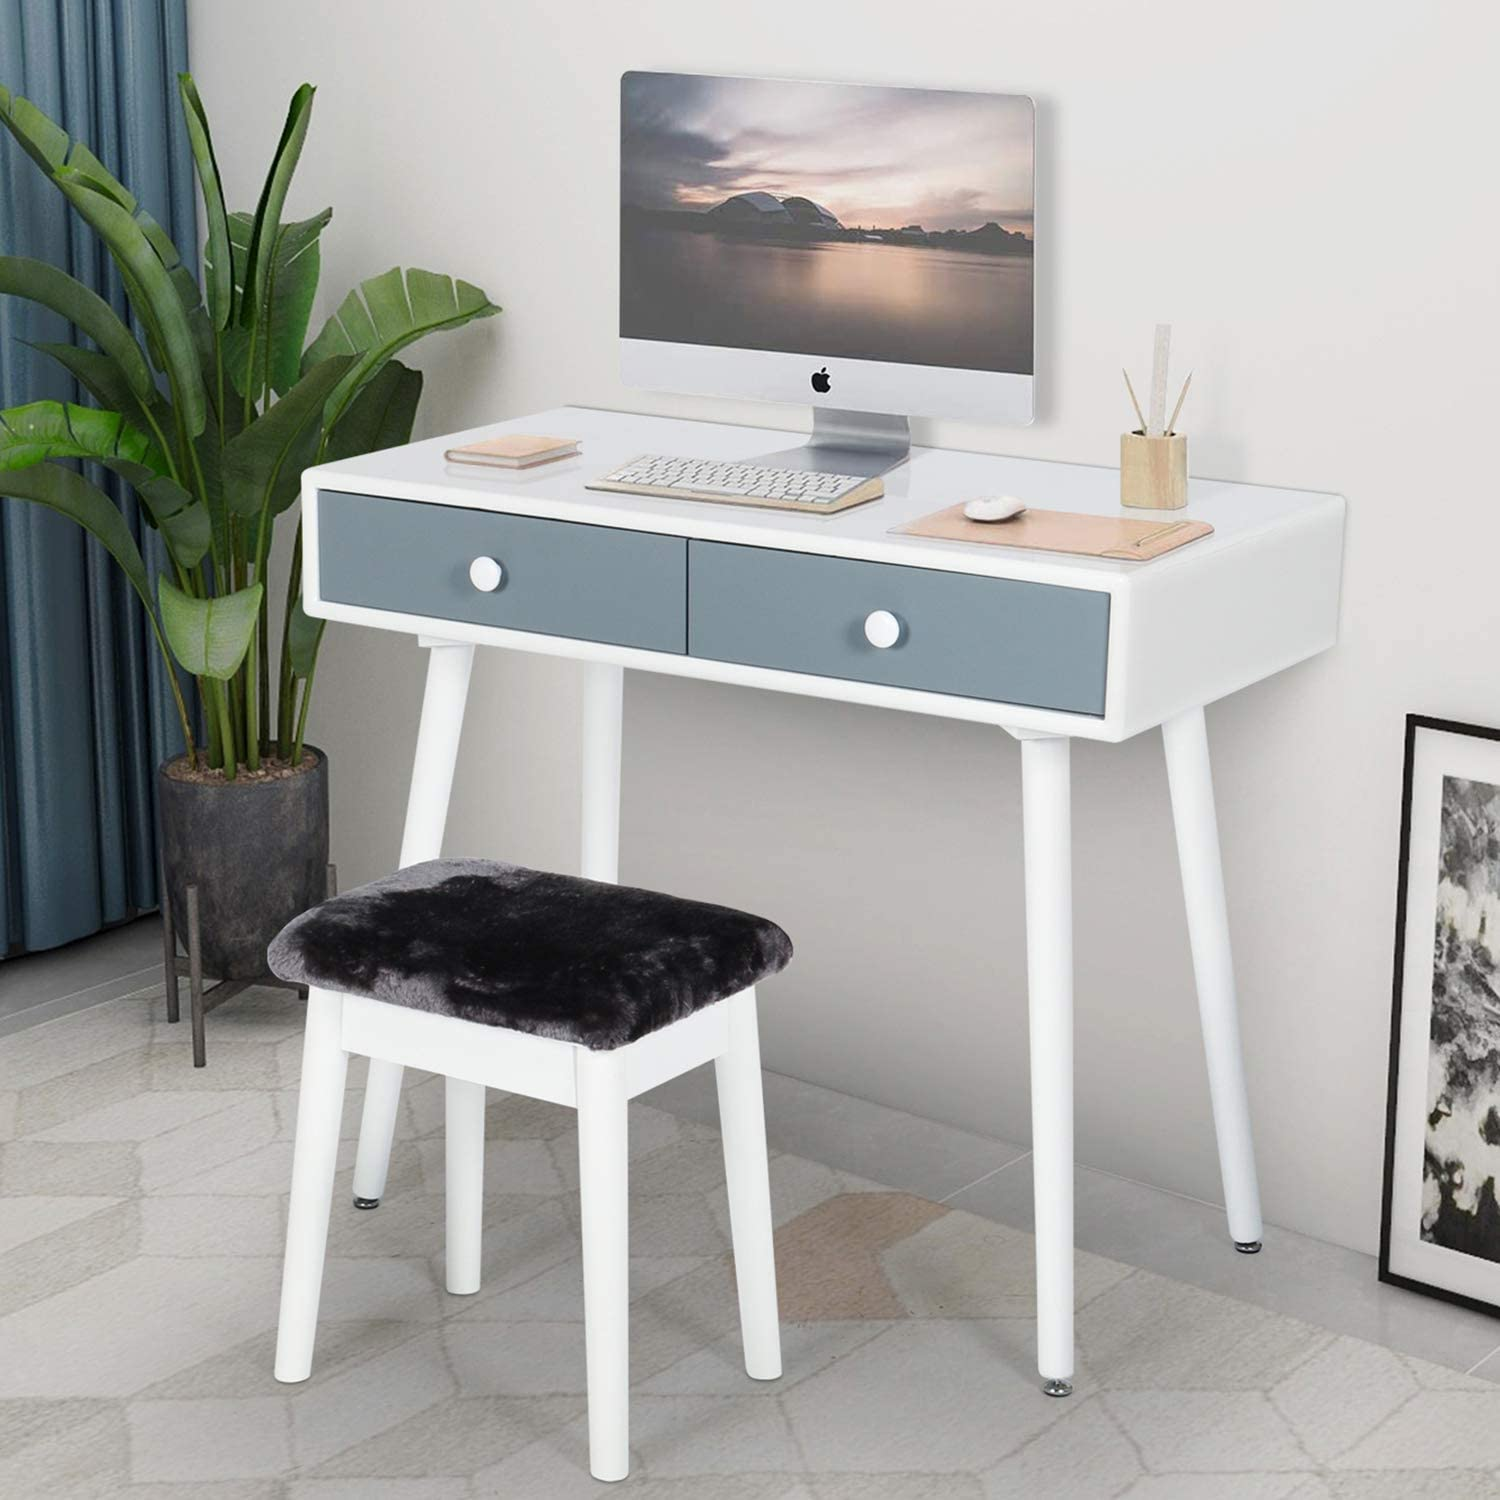 Amazon Com Computer Desk And Chair Set Student Study Reading Writing Desk With Drawers Workstation Home Office Furniture Makeup Vanity Table With Stool For Bedroom White Grey Kitchen Dining